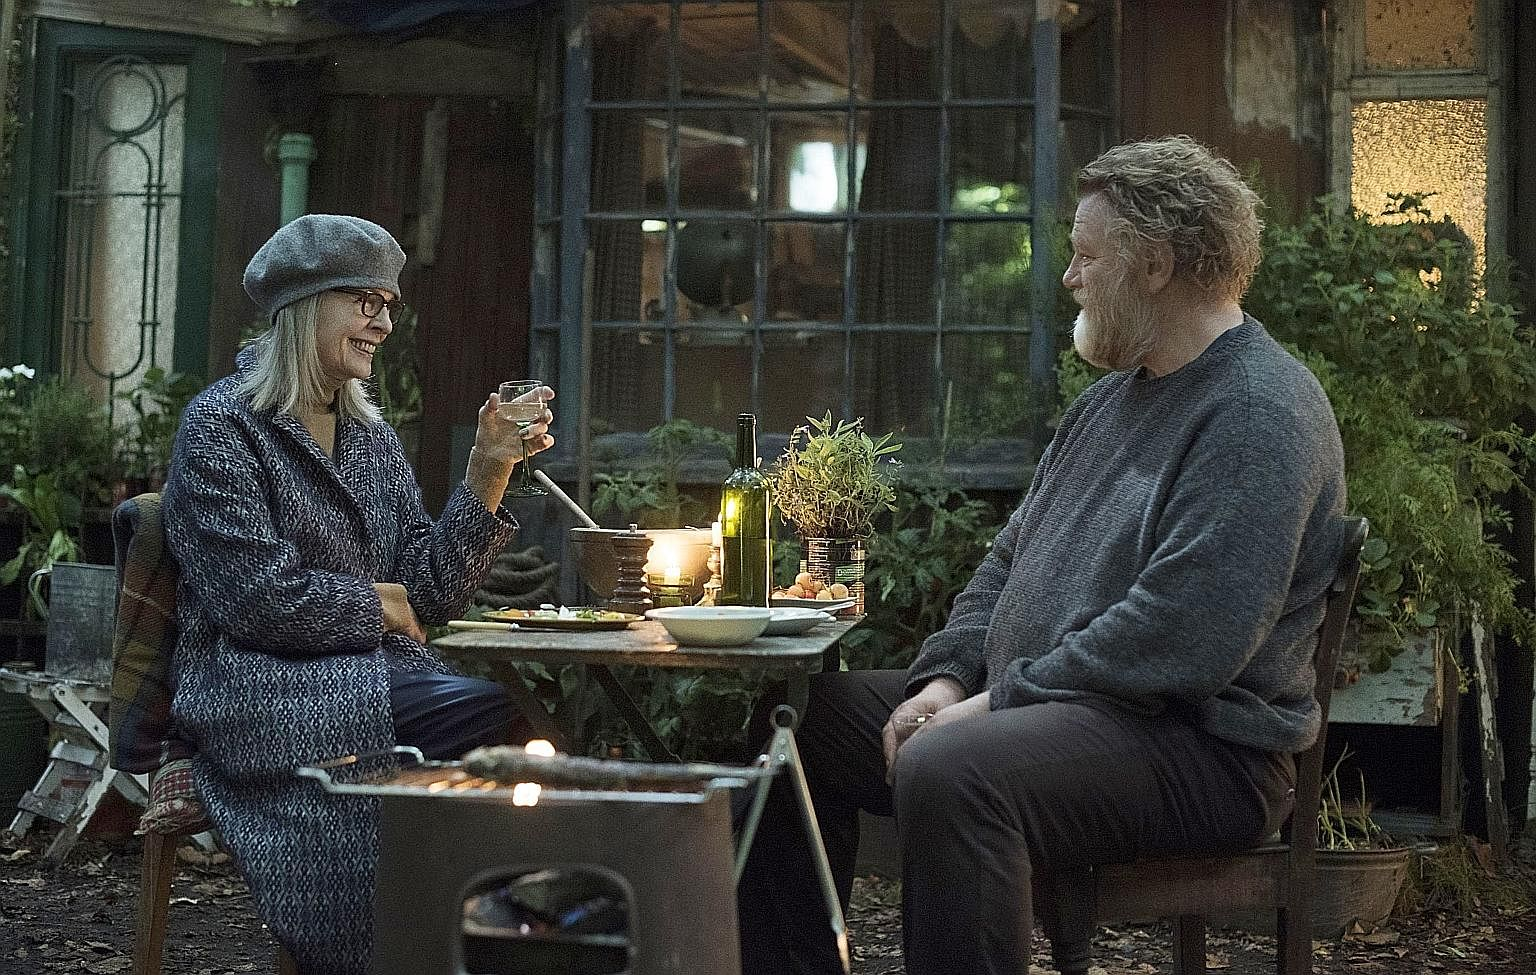 (Above) Diane Keaton and Brendan Gleeson in Hampstead.